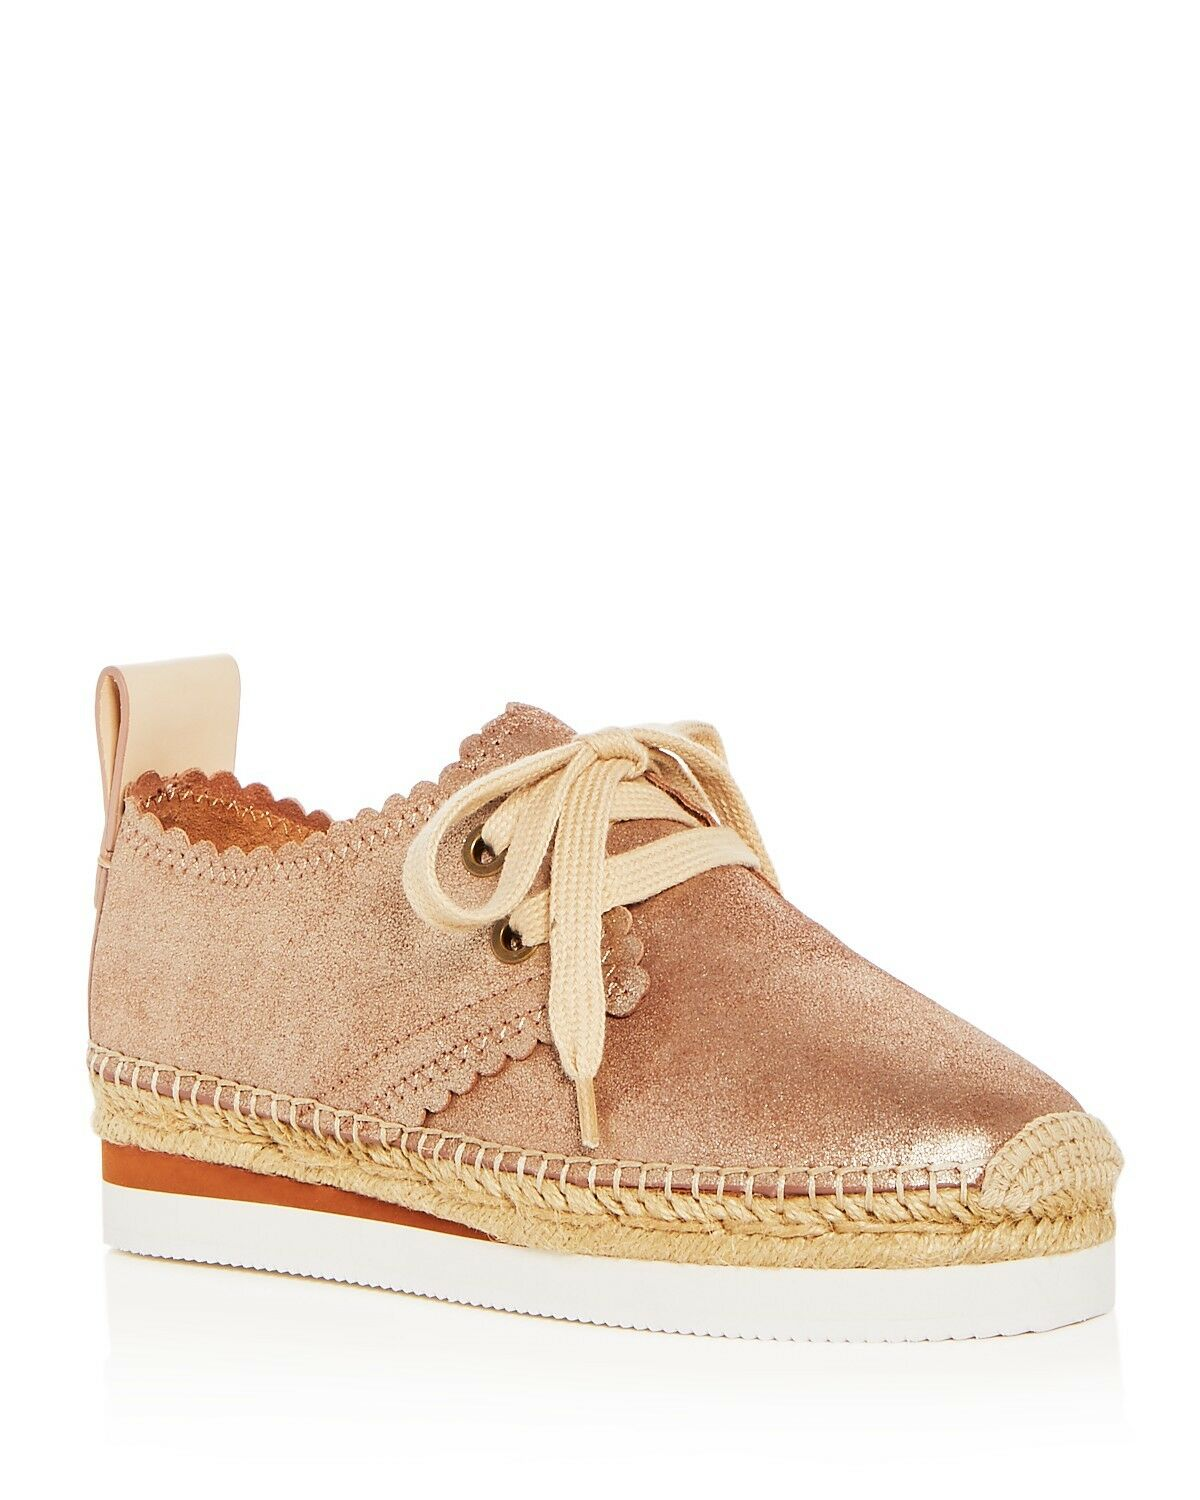 See by Chloé Women's Scalloped Leather Lace Up Up Up Platform Espadrille Flats Size 38 33aa75